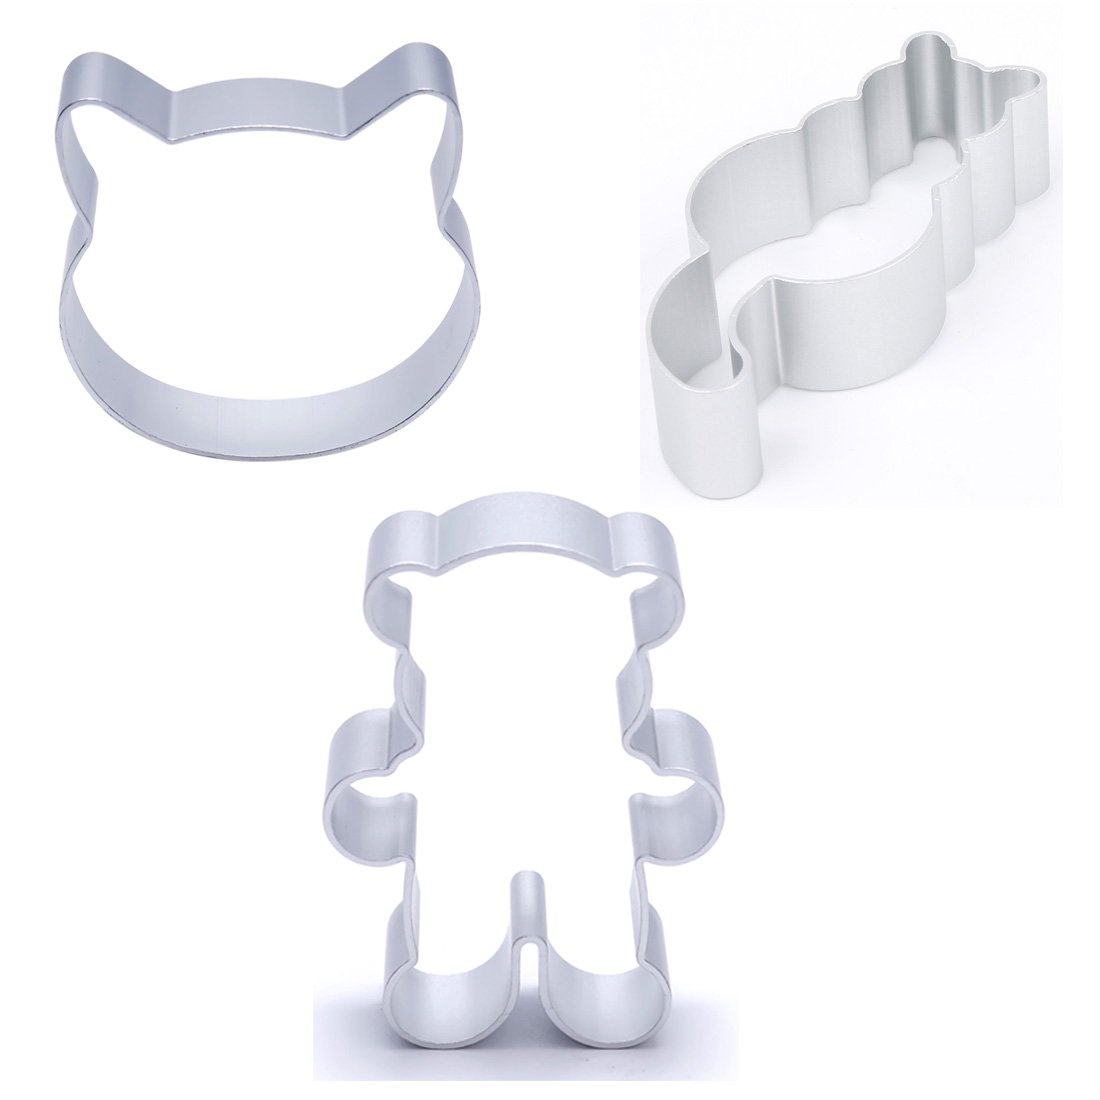 3Pcs Cat Little Bear Shape Fondant Biscuit Aluminium Cookie Cutter Mold Animal Pastry Mould Cake Decoration Baking Tool